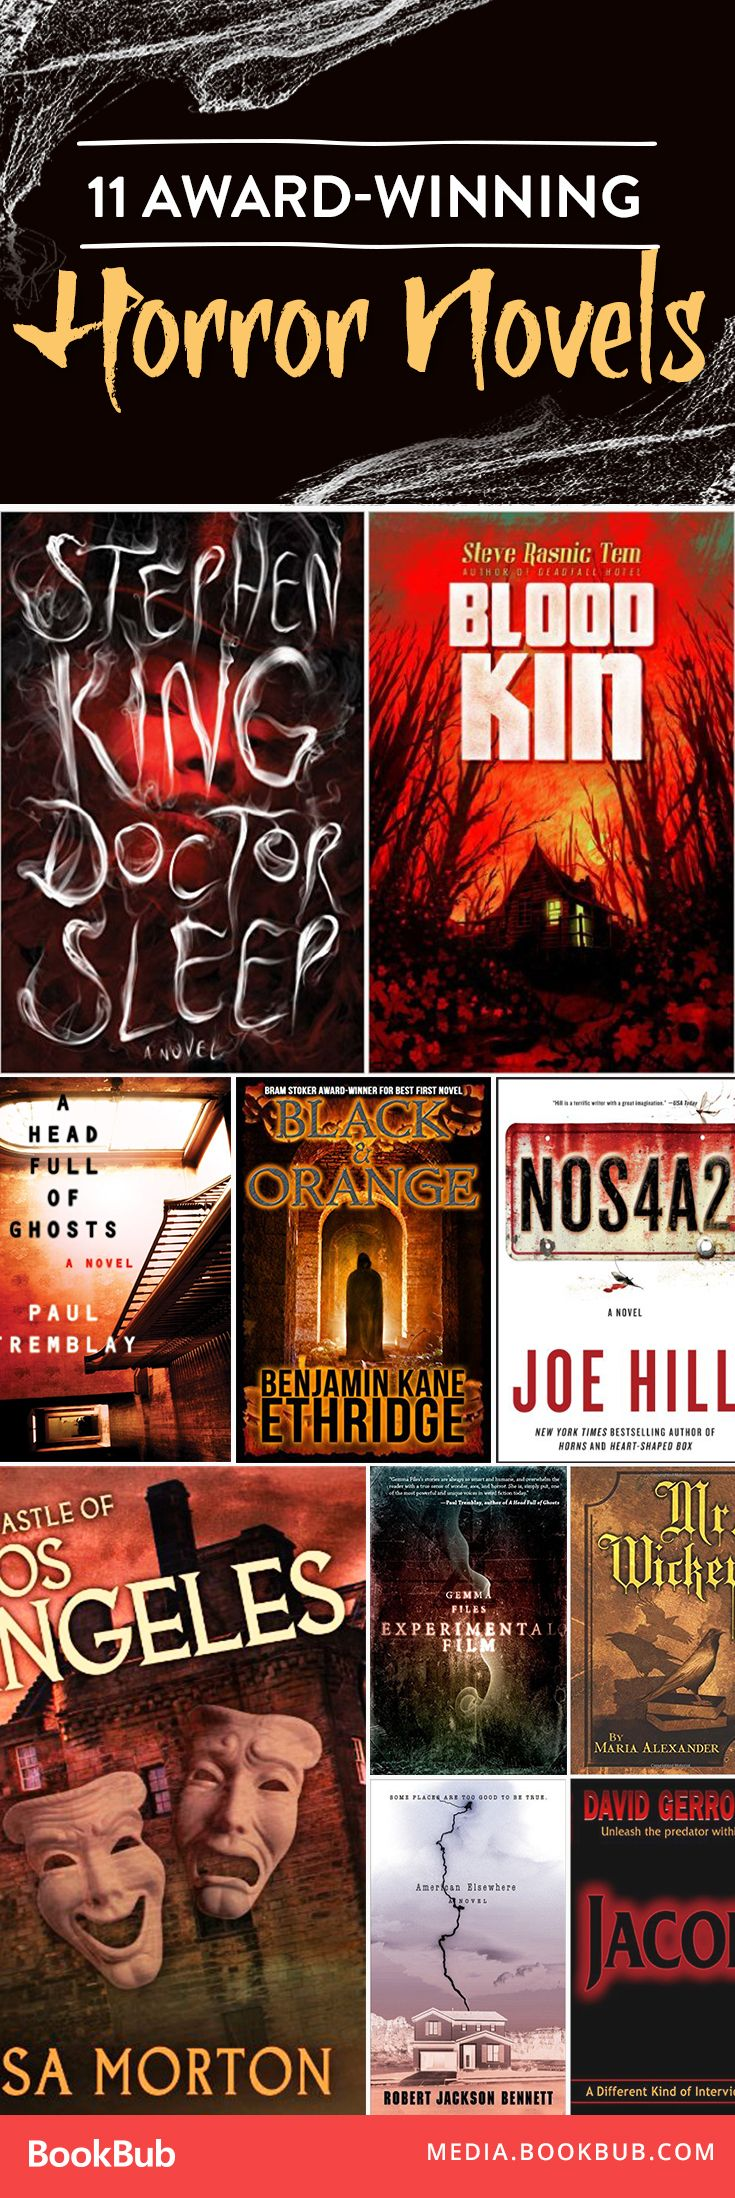 11 AwardWinning Books to Read This Halloween is part of Horror books, Scary books, Books to read, Horror book, Book worth reading, Reading - What better way to celebrate than with a spooky book